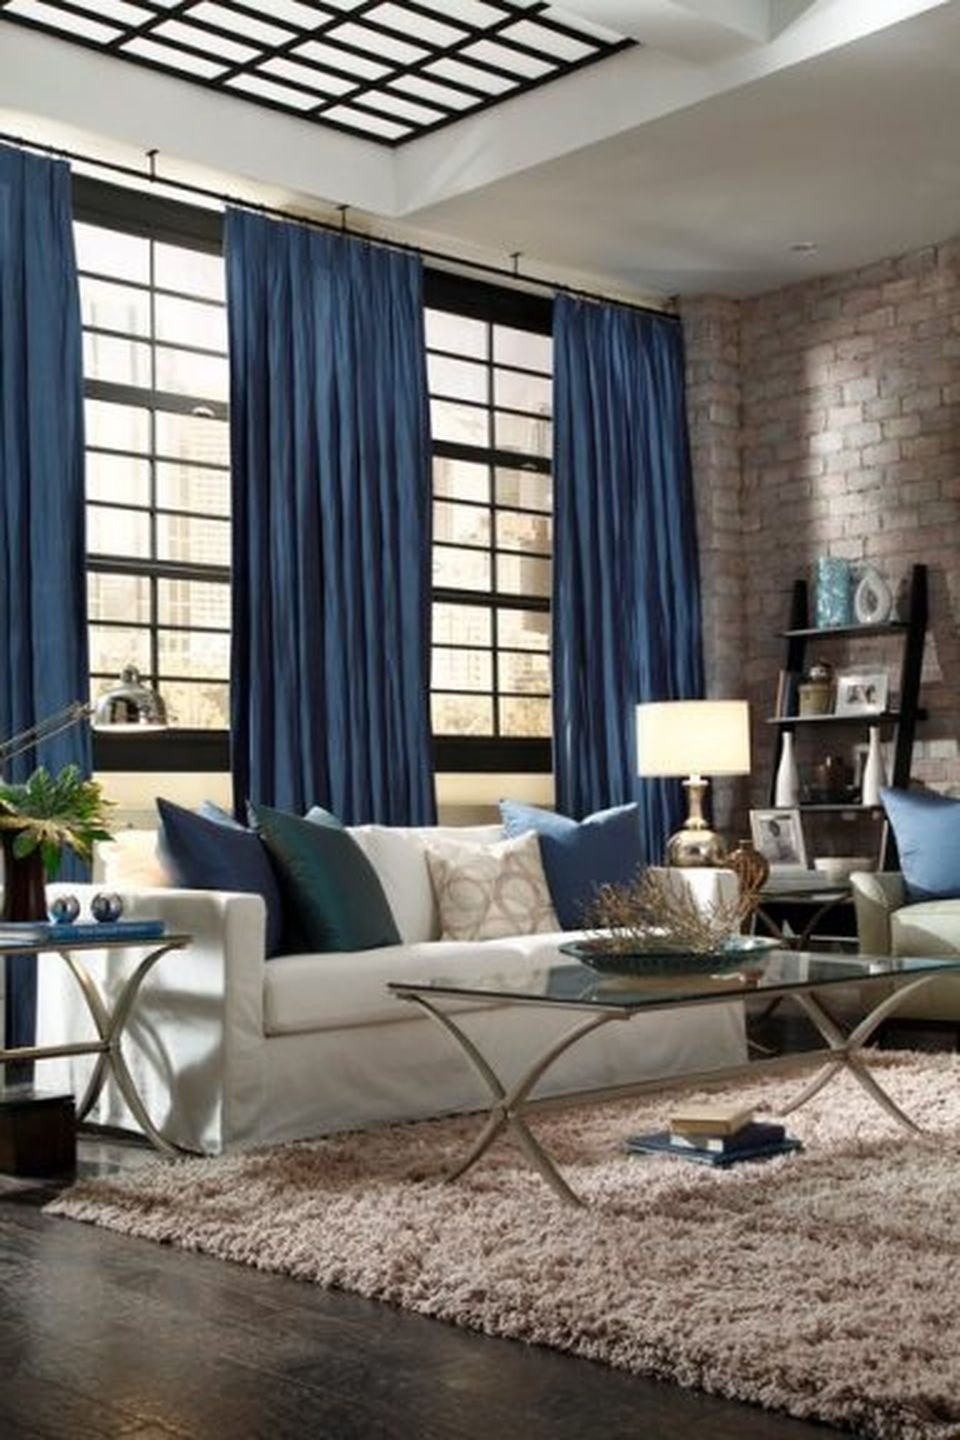 Awesome Tall Curtains Ideas for Living Room 17 - Hoommy.com on Living Room Drapes Ideas  id=77560